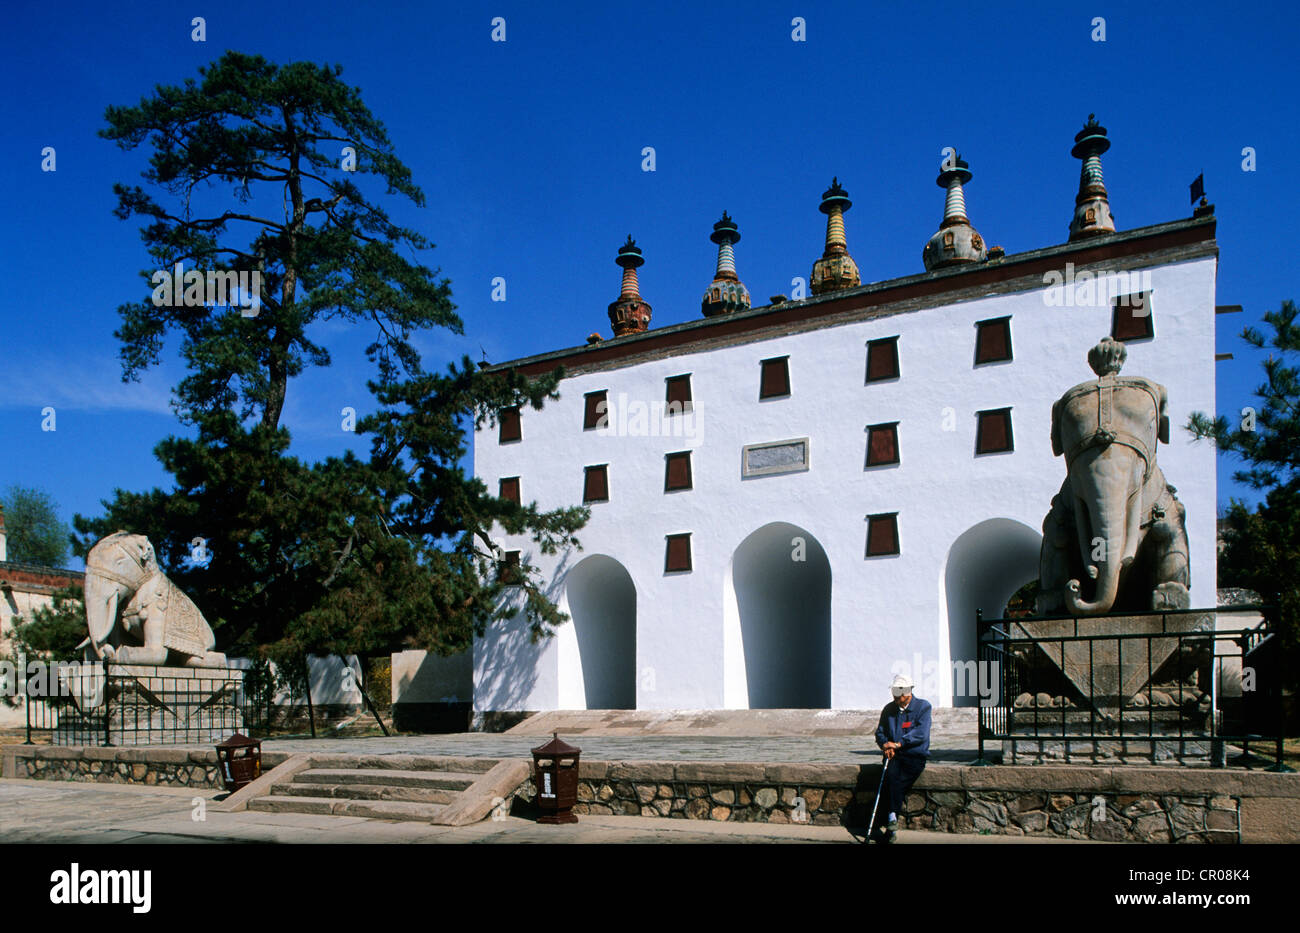 China, Hebei Province, Chengde city, the Putuozongshen temple of the Potala school - Stock Image